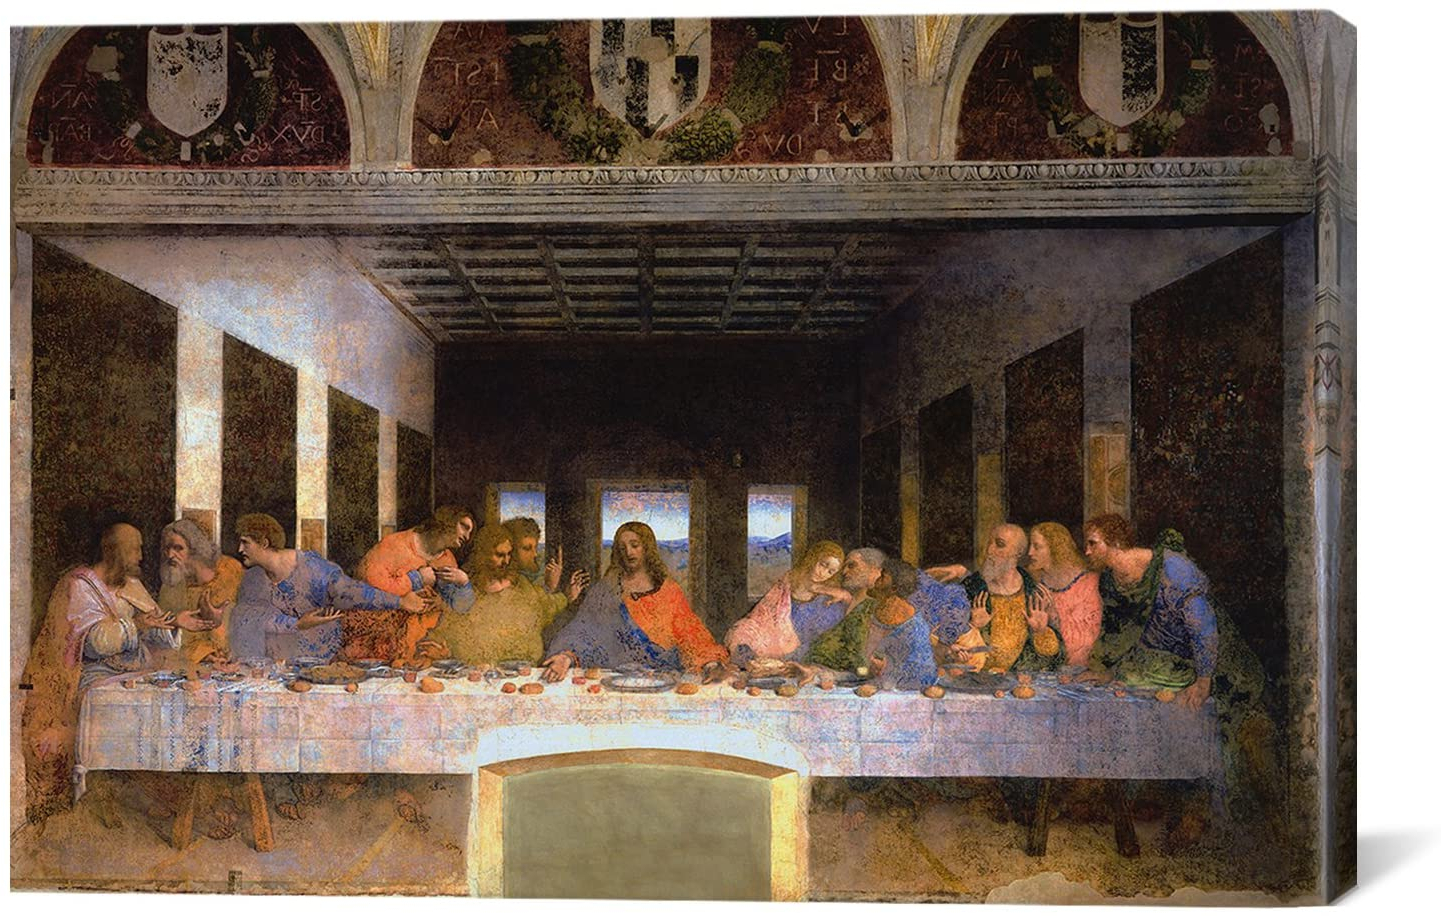 Popular Blended Fabric Leonardo Davinci The Last Supper Wall Hangings Within Amazon: Icanvasart 3 Piece The Last Supper,leonardo (View 4 of 20)